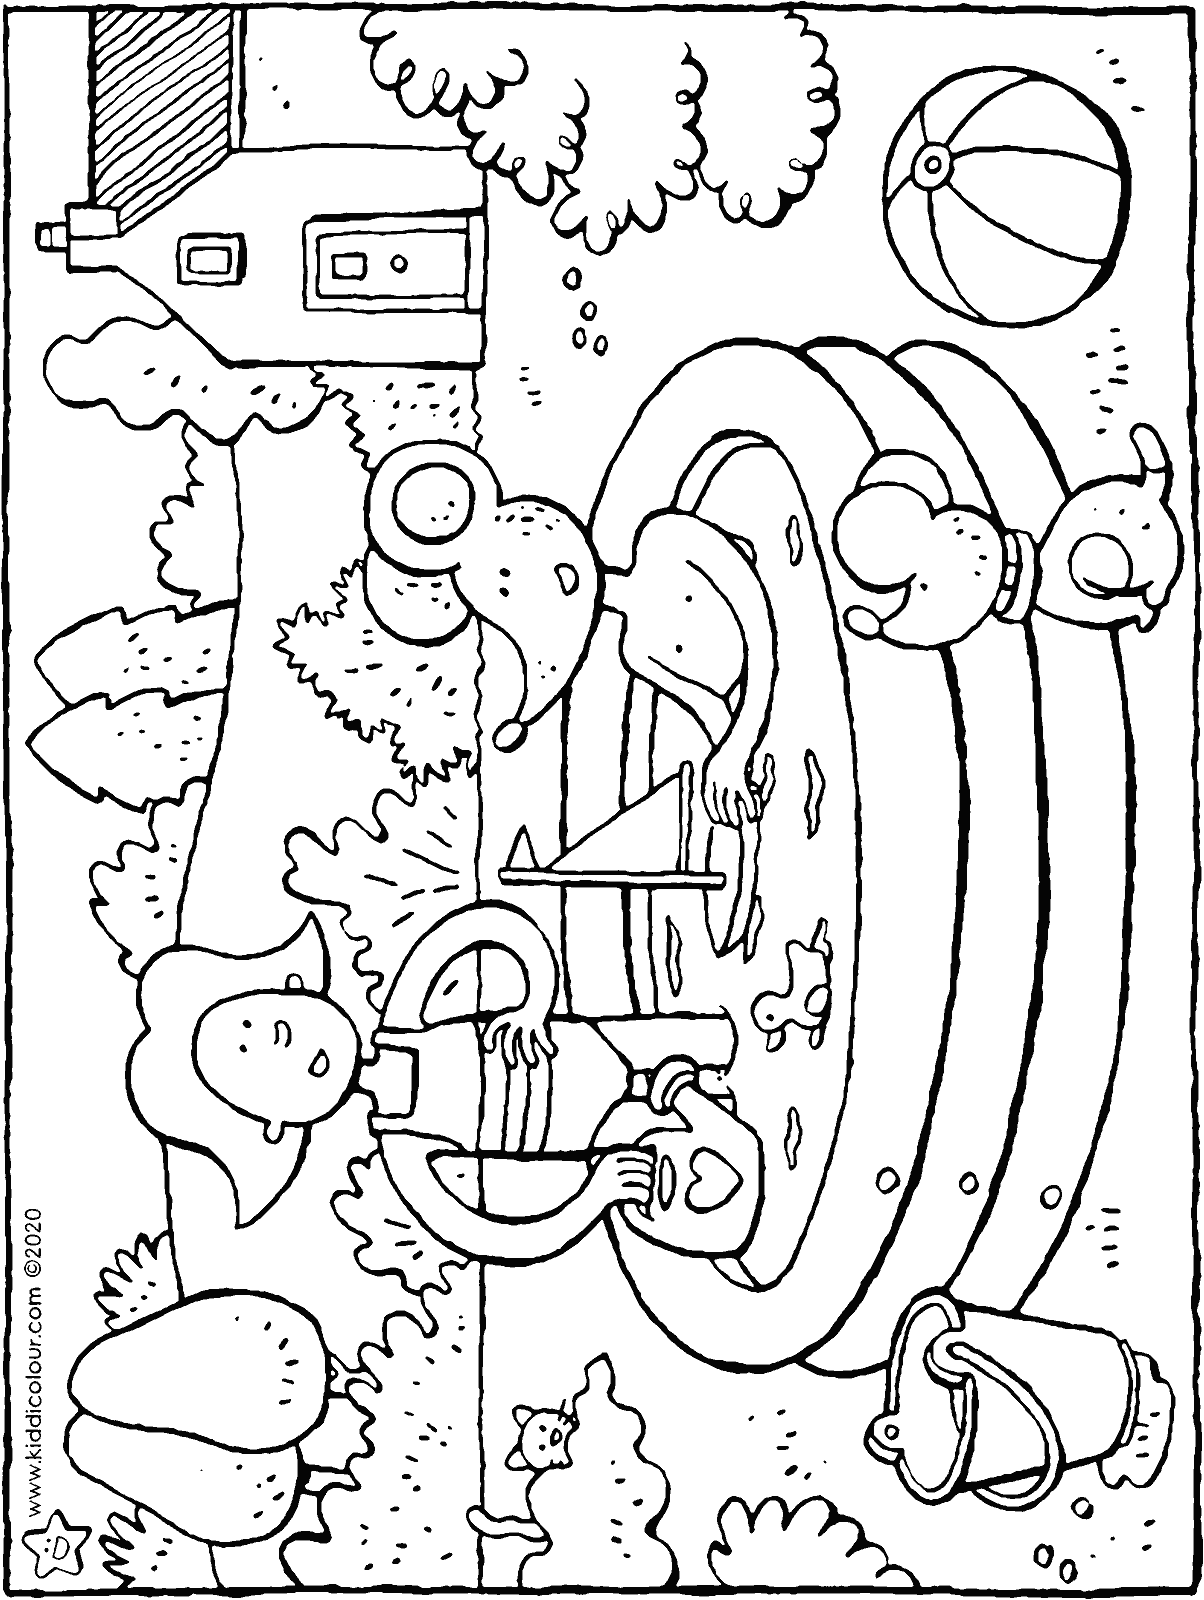 Emma and Thomas play in the paddling pool colouring page drawing picture 01H